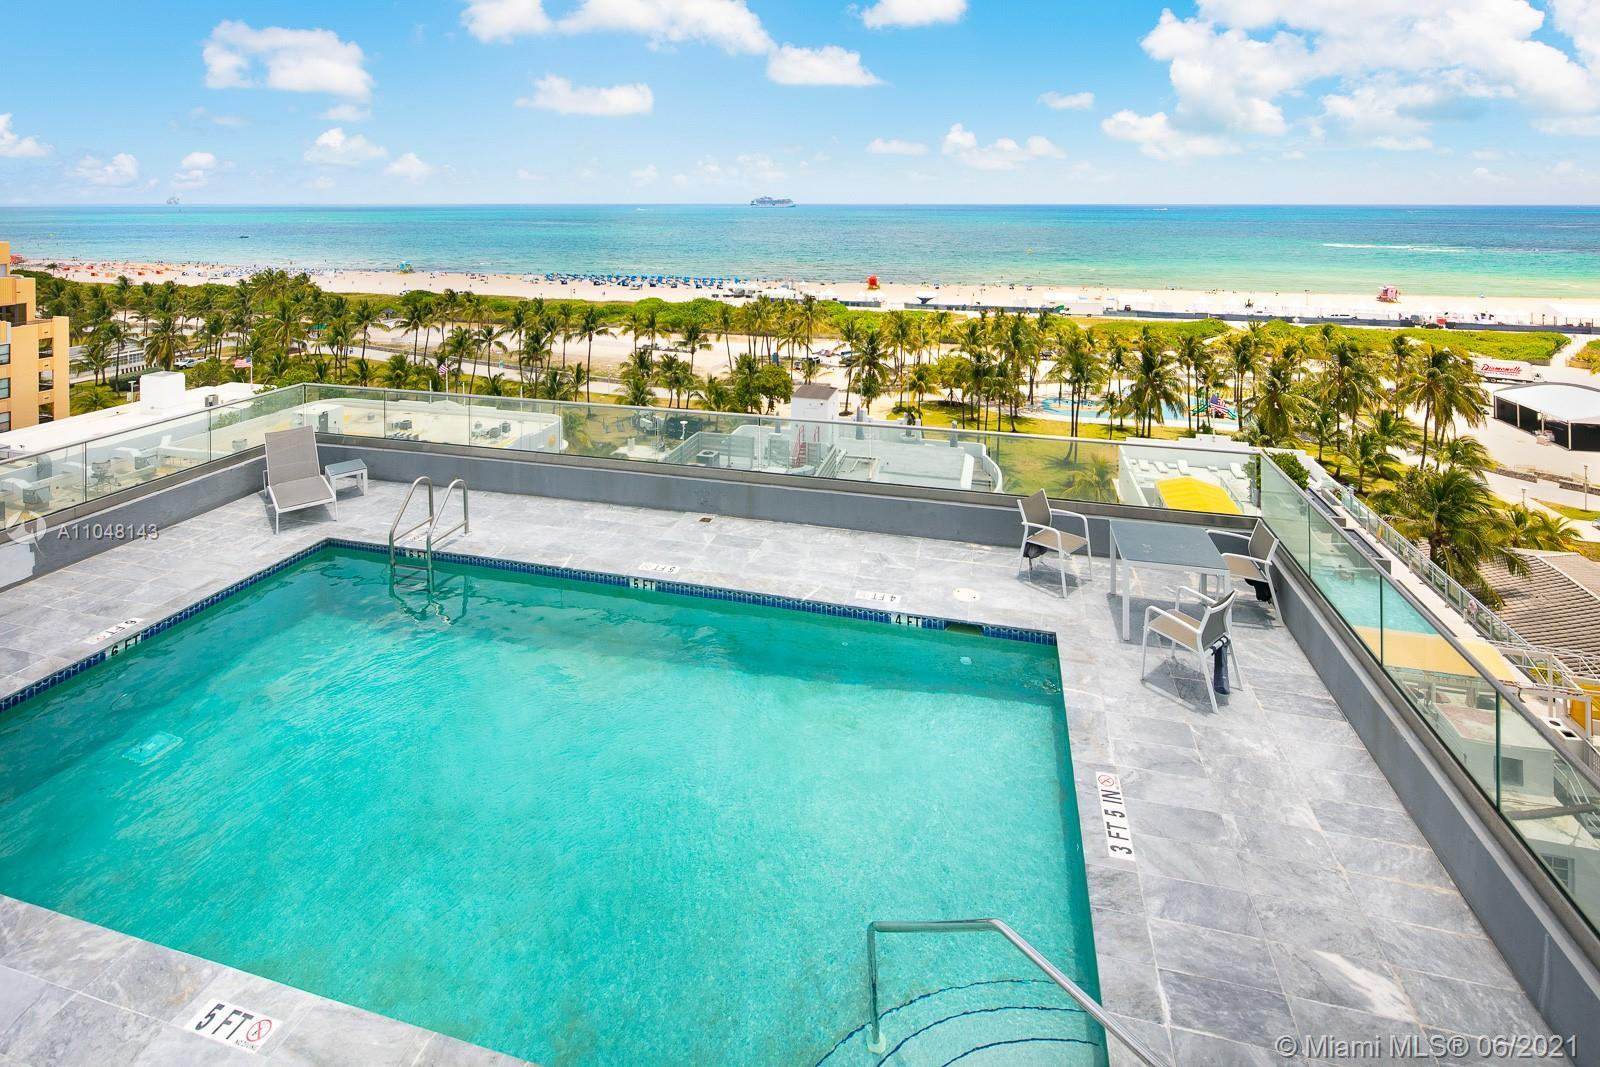 LOCATION. LOCATION. LOCATION - 1 building off Ocean Drive & the sand & warm waters of Miami Beach.